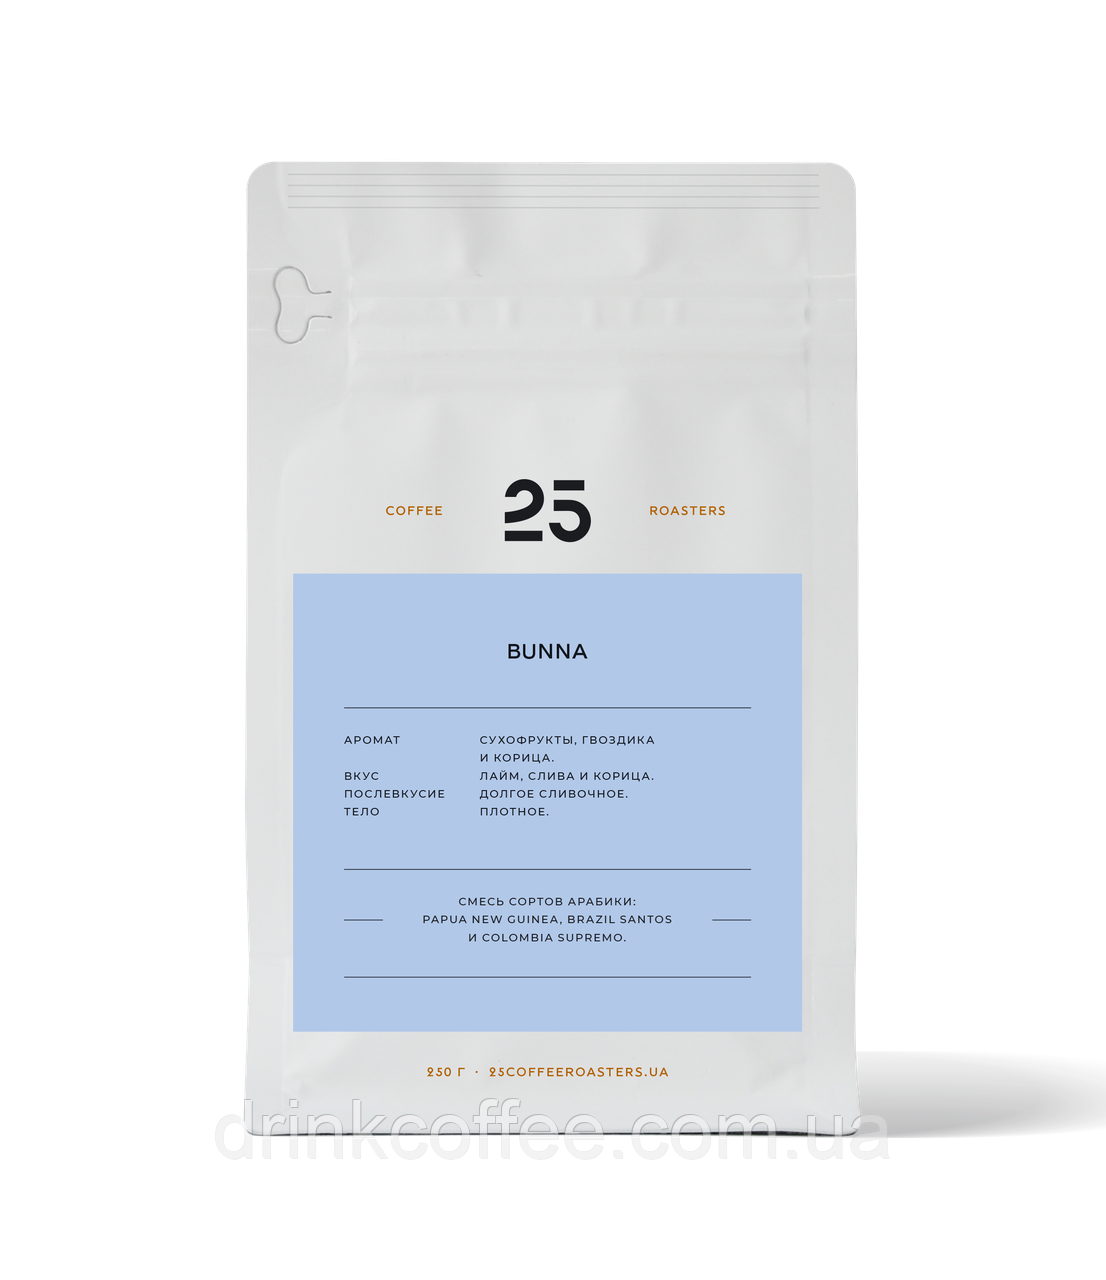 Кофе Bunna, зерно, 25 Coffee Roasters, 1кг